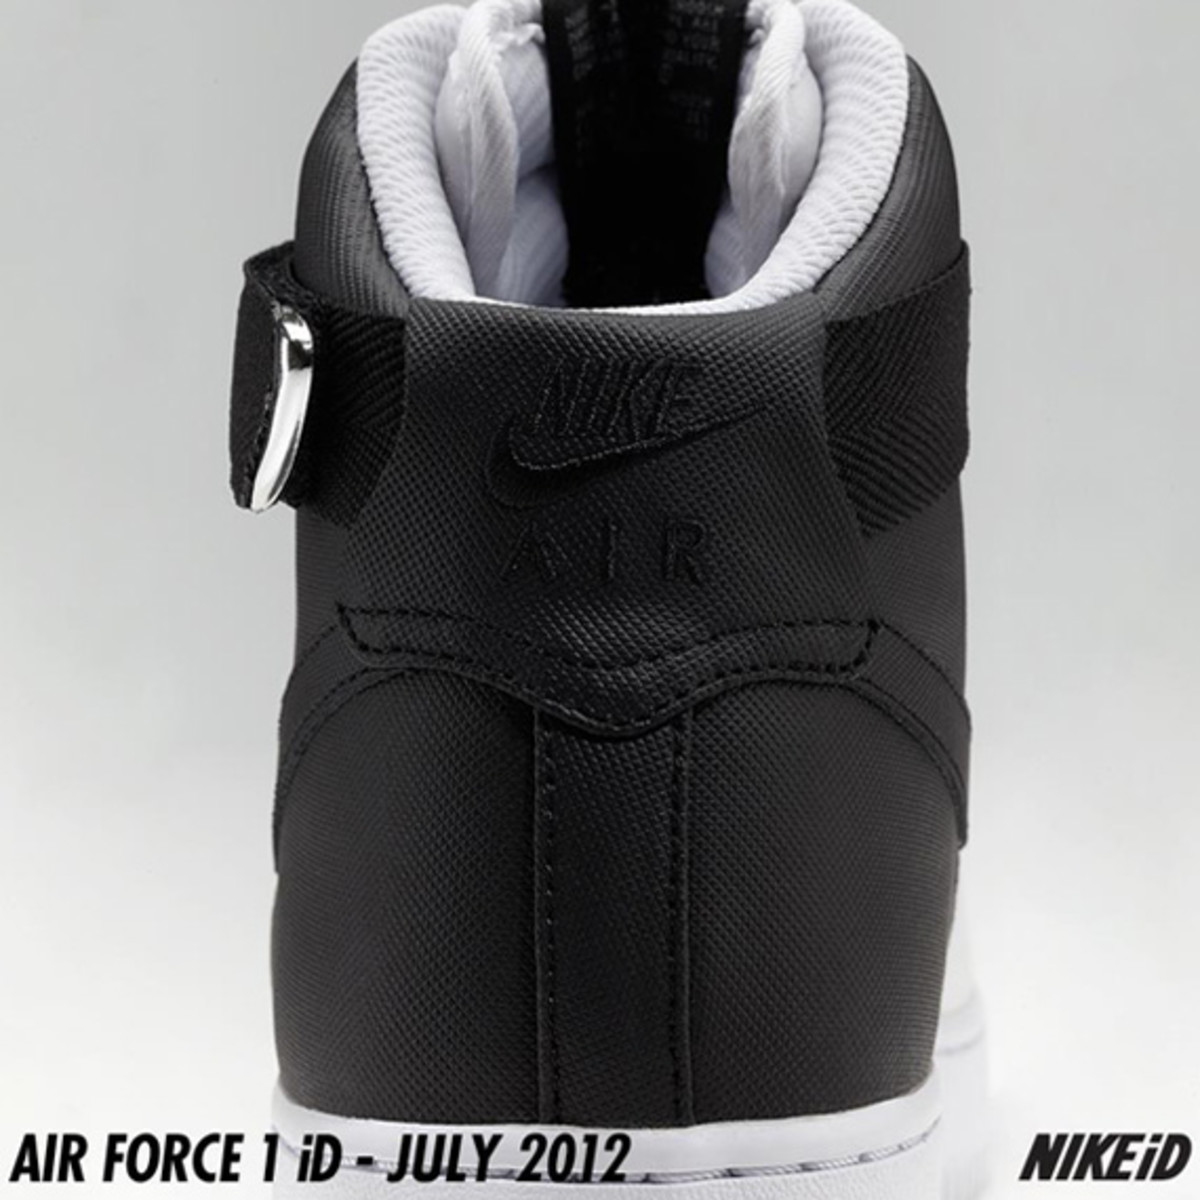 nikeid-air-force-1-id-tactical-mesh-grip-leather-design-july-2012-06